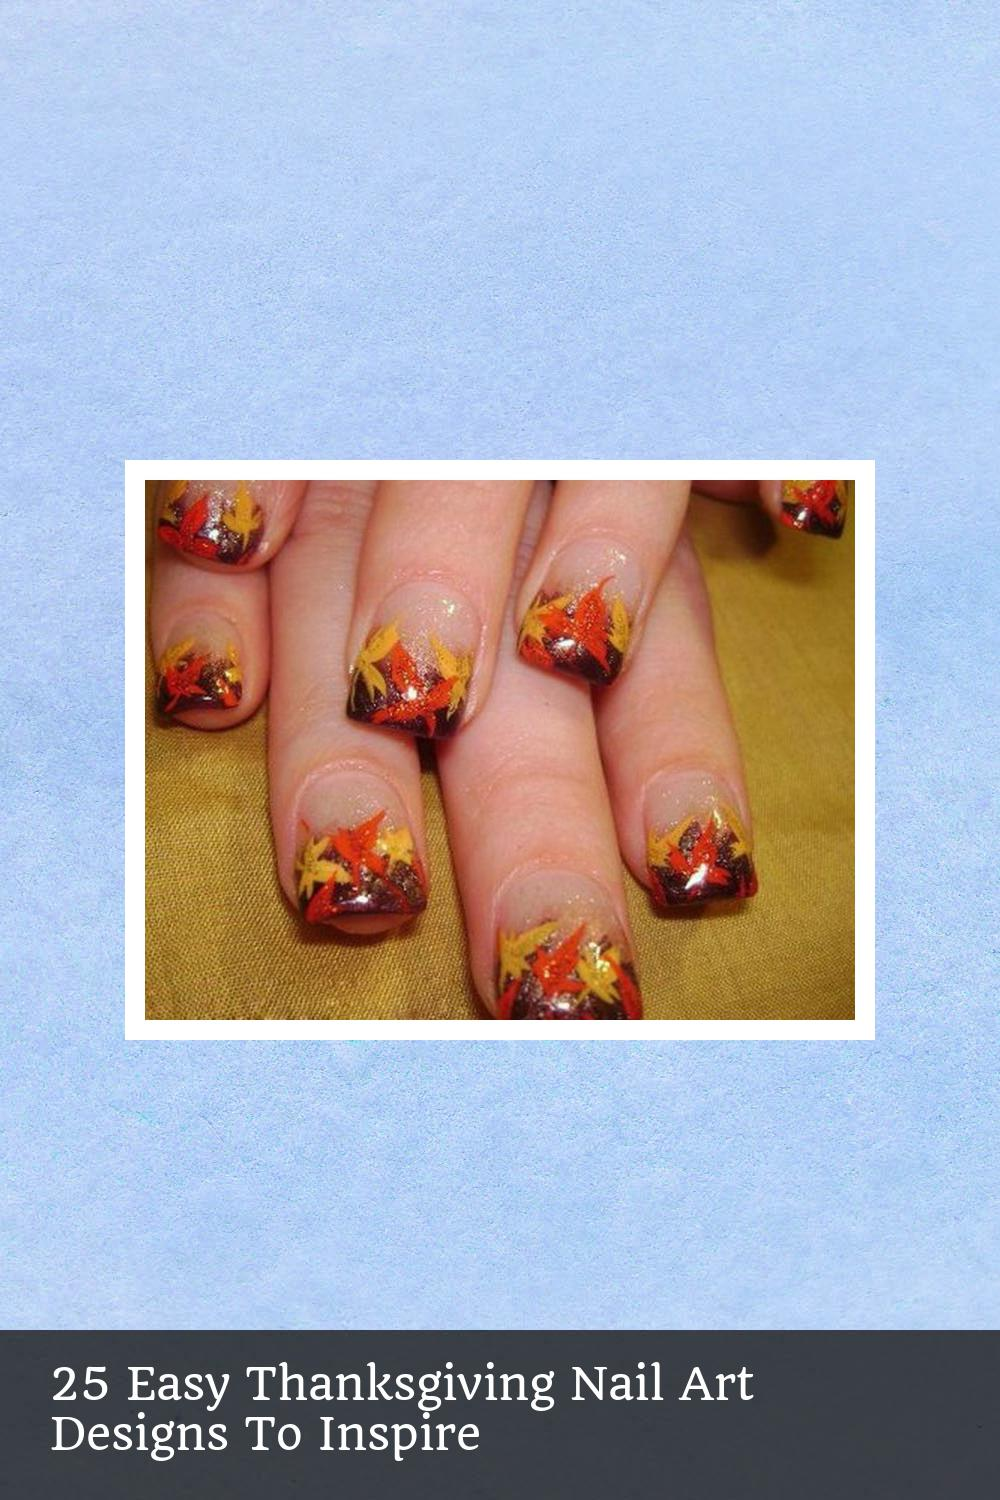 25 Easy Thanksgiving Nail Art Designs To Inspire 2